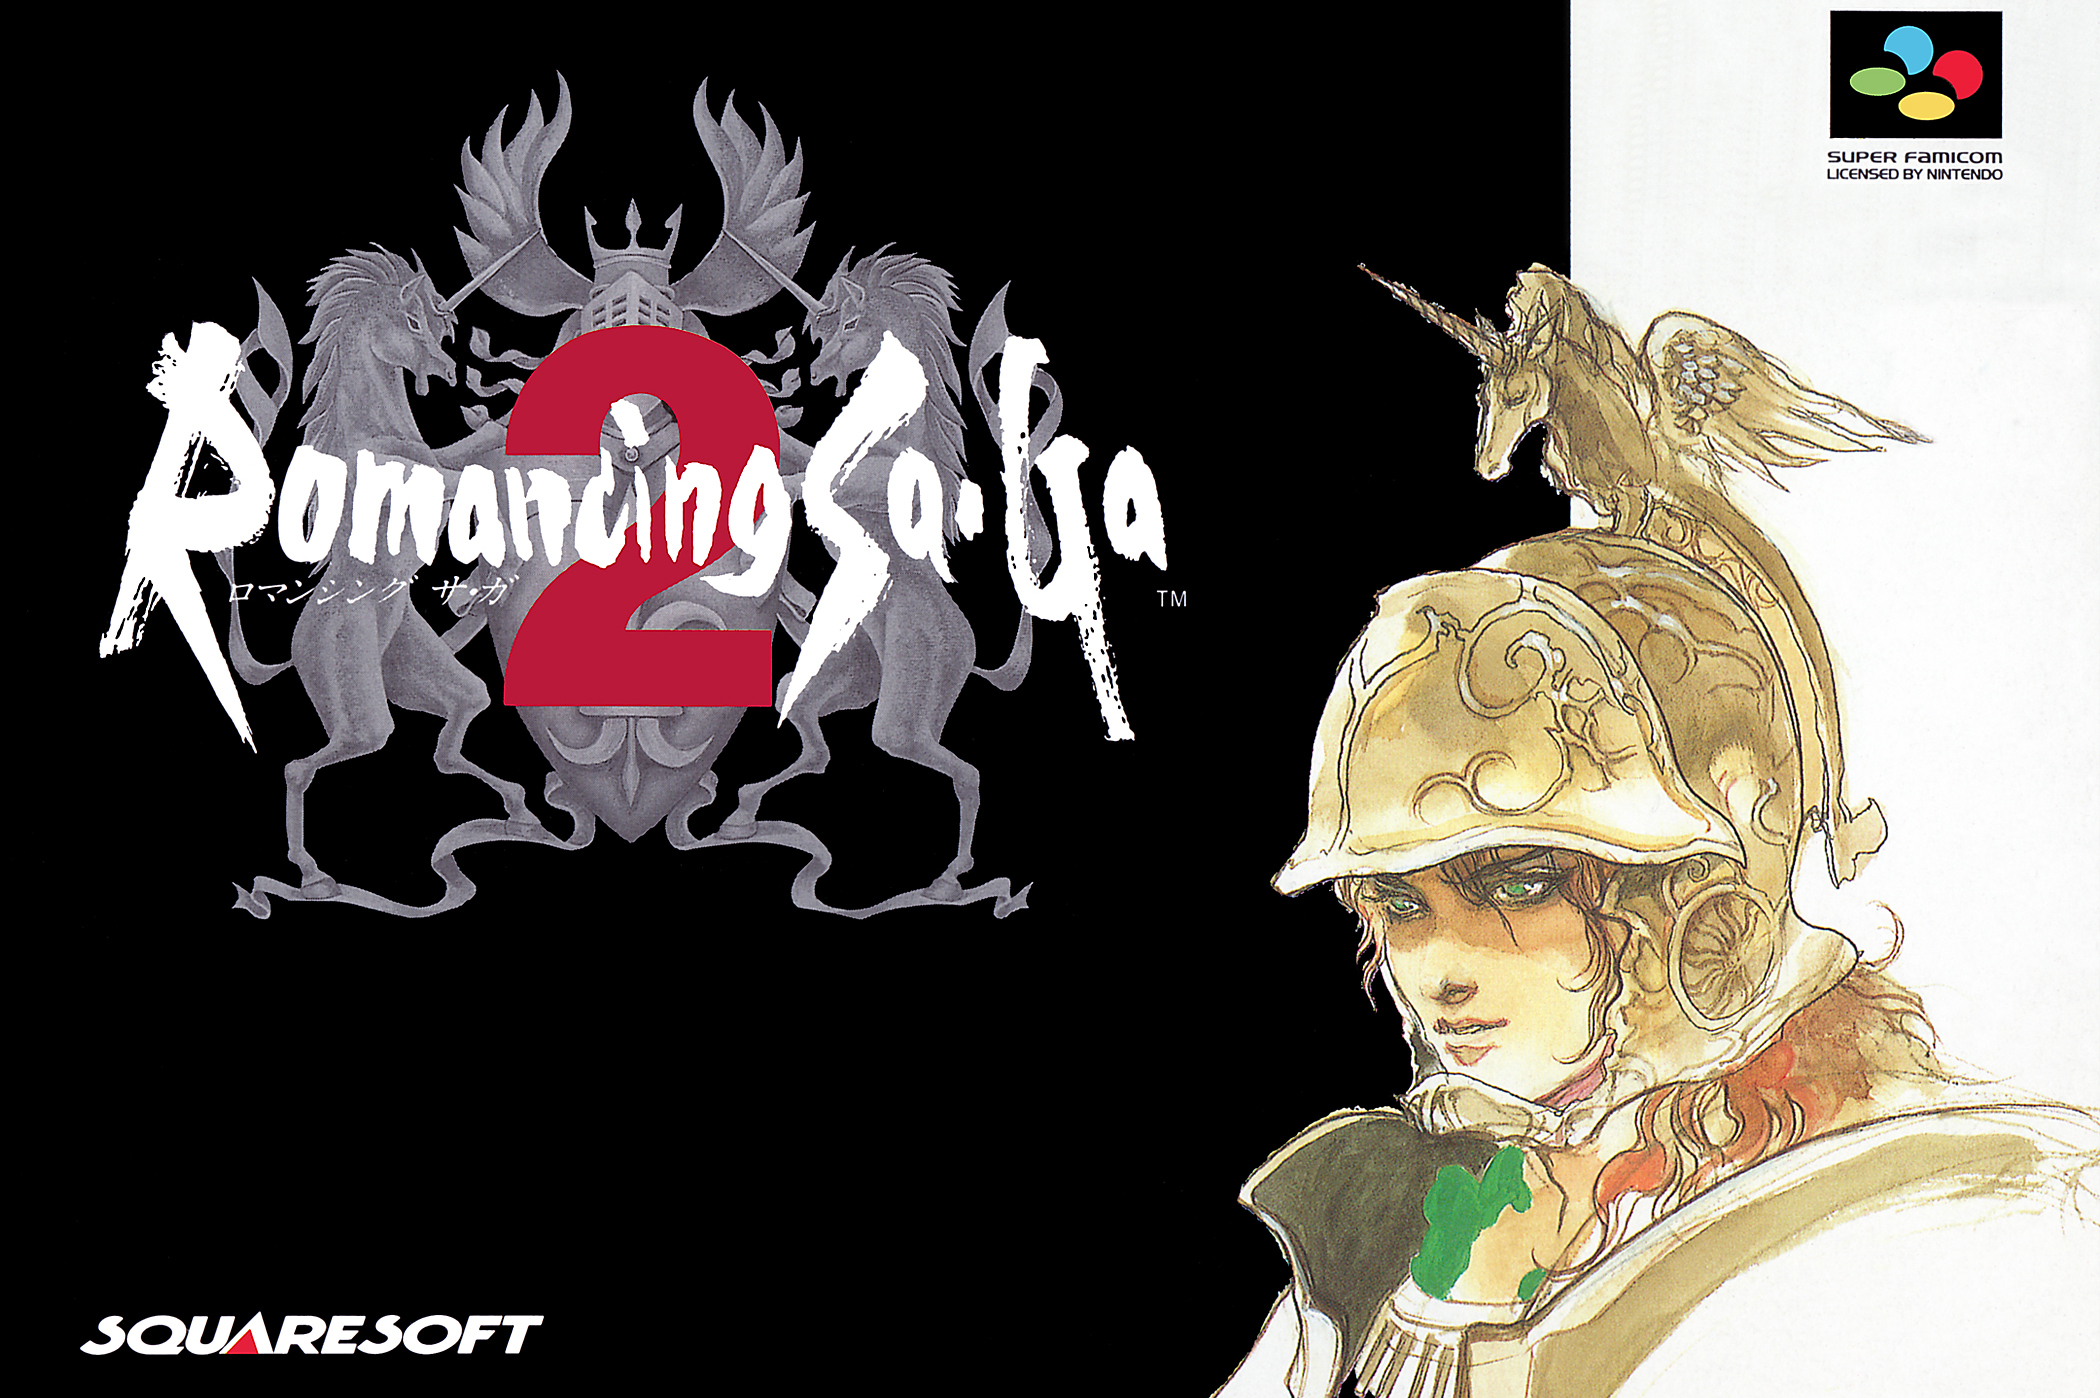 Modojo | Romancing SaGa 2 is Delayed On PS Vita Several Months